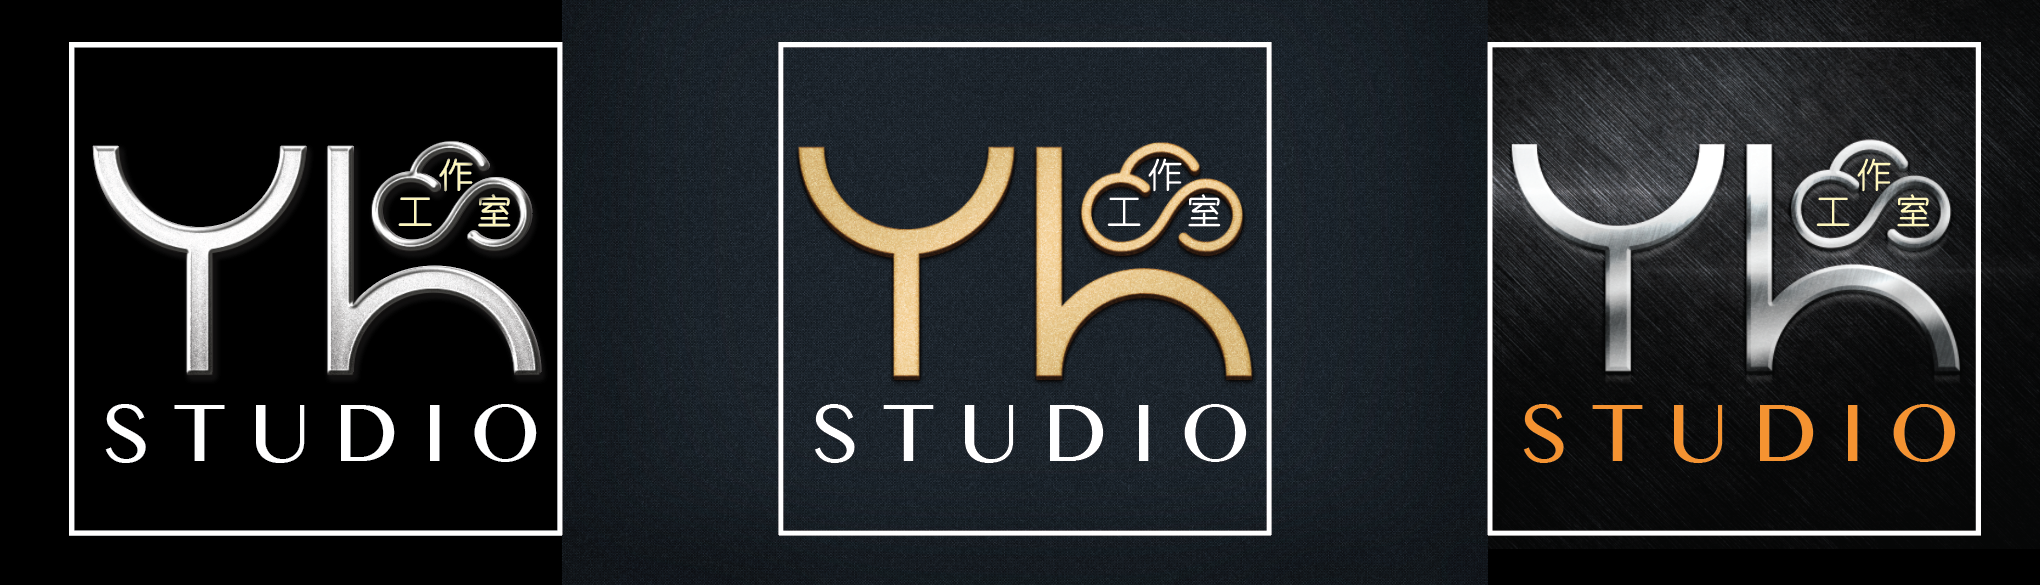 YH Studio_Logo Design